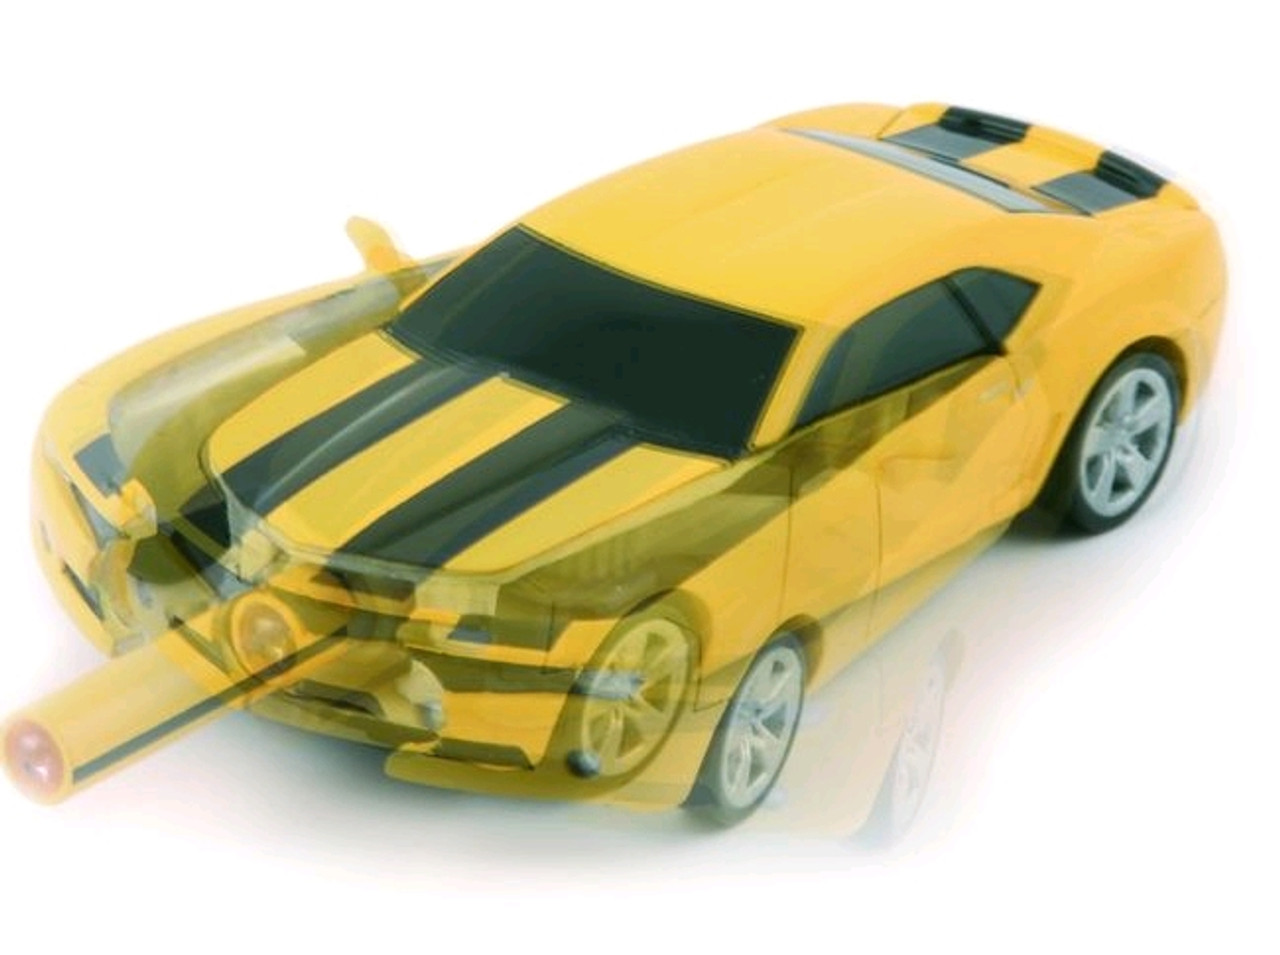 Transformers: Revenge of the Fallen - Bumblebee Transforming Torch-WESTF13